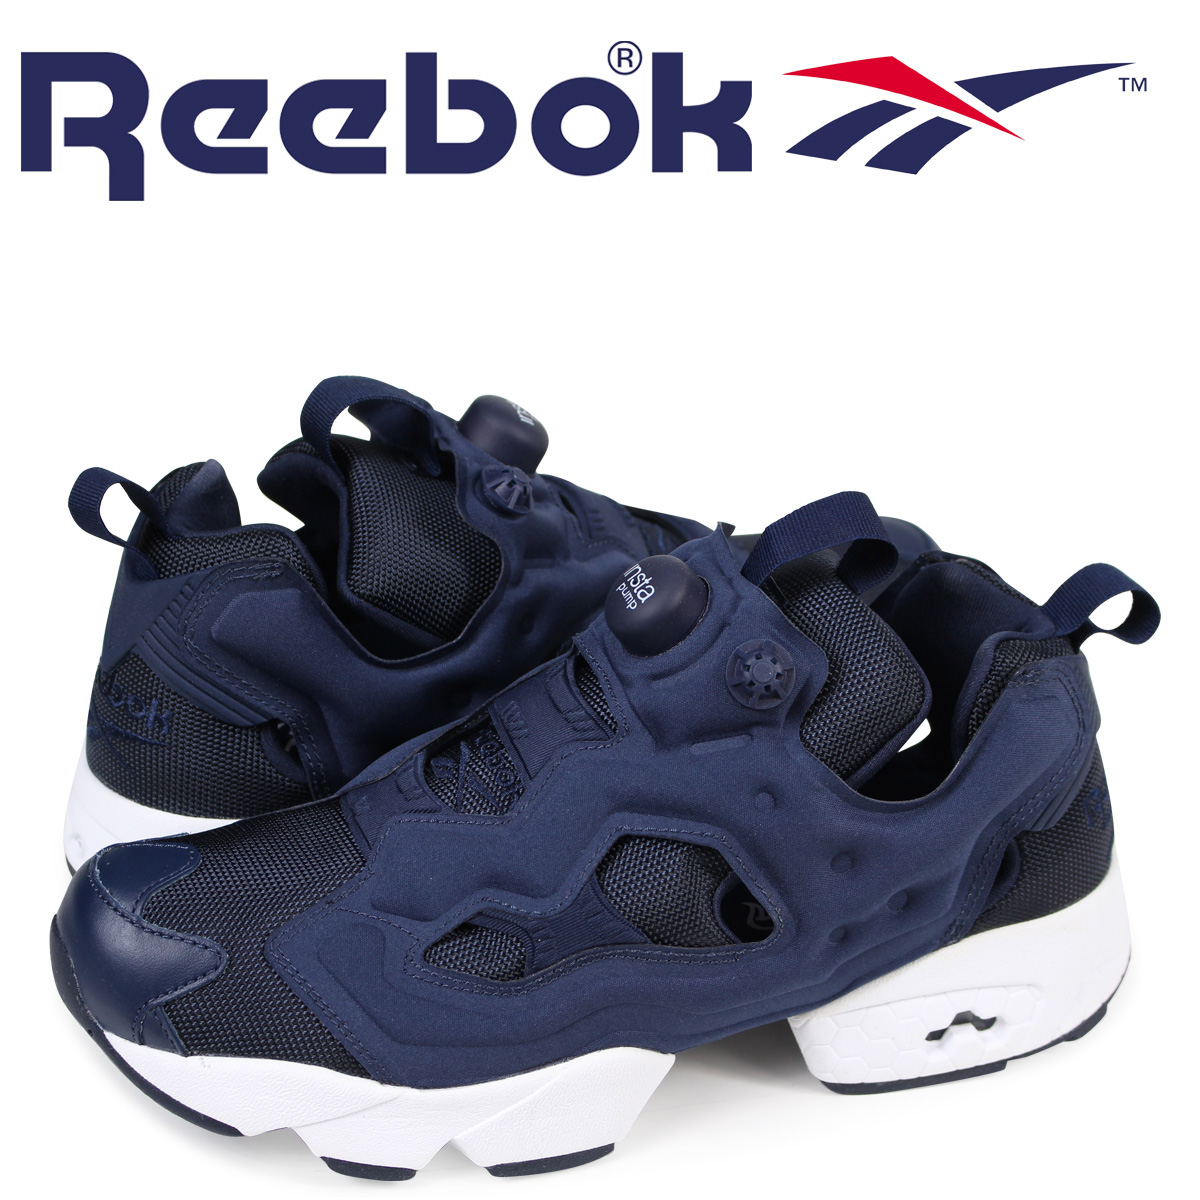 7d88d896dfd Reebok Reebok INSTA PUMP FURY OG sneaker insta pump fury original mesh  leather men s women s M48559 white black unisex  7   17 new stock   regular